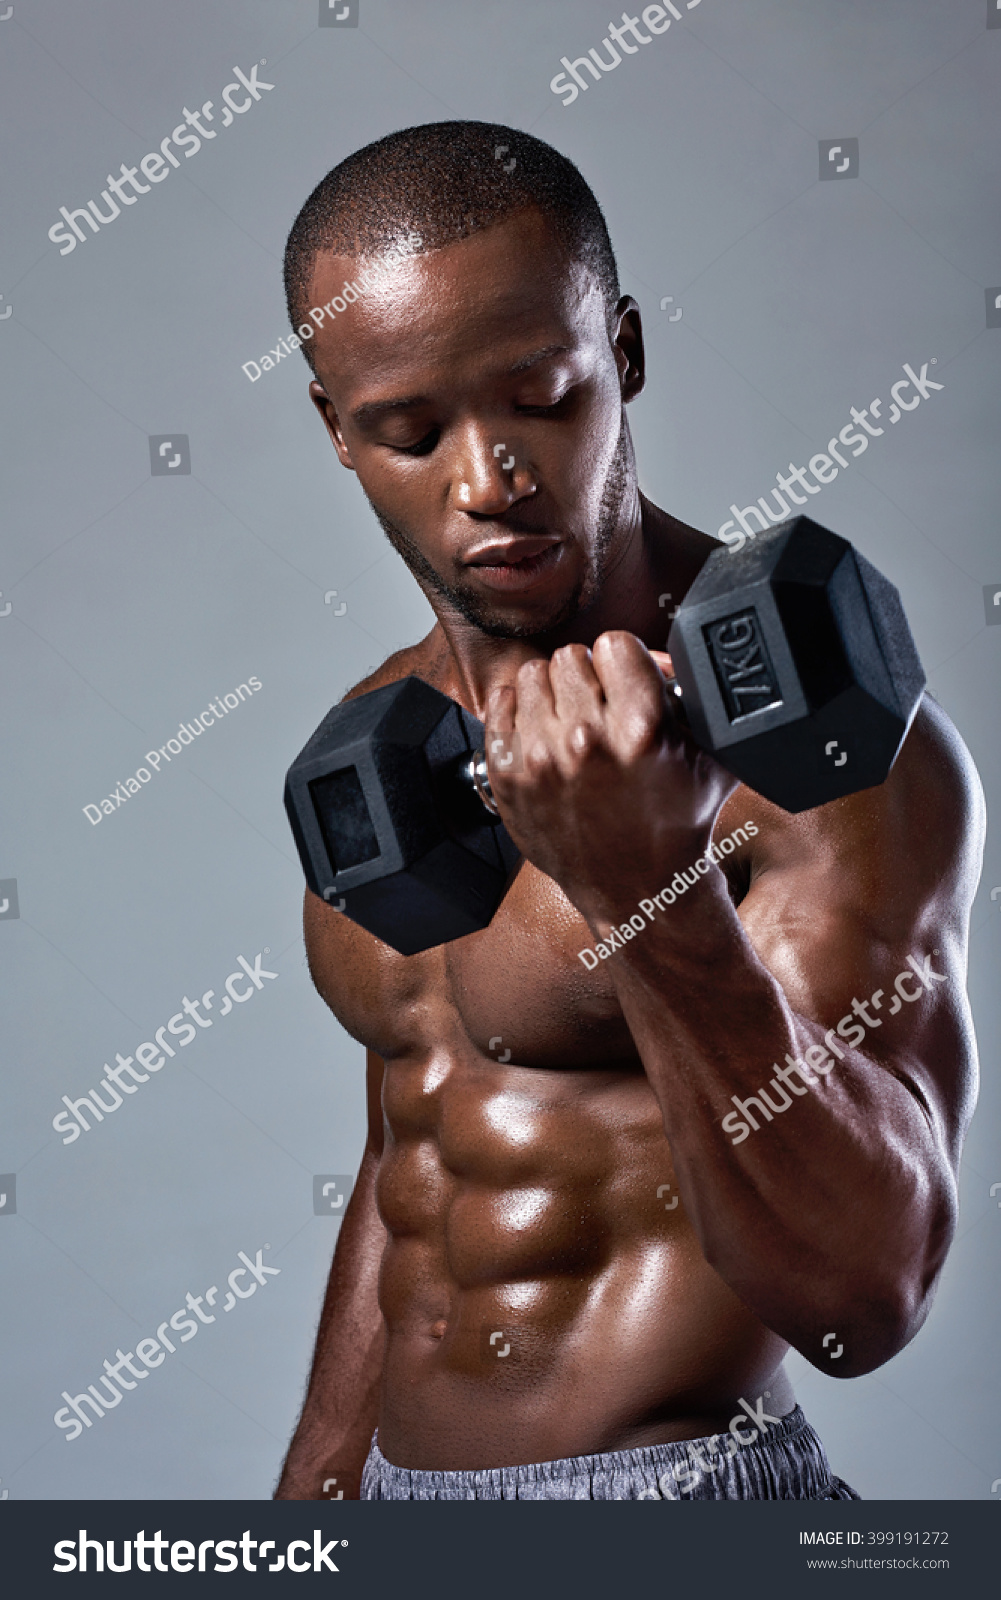 how to get defined abs male